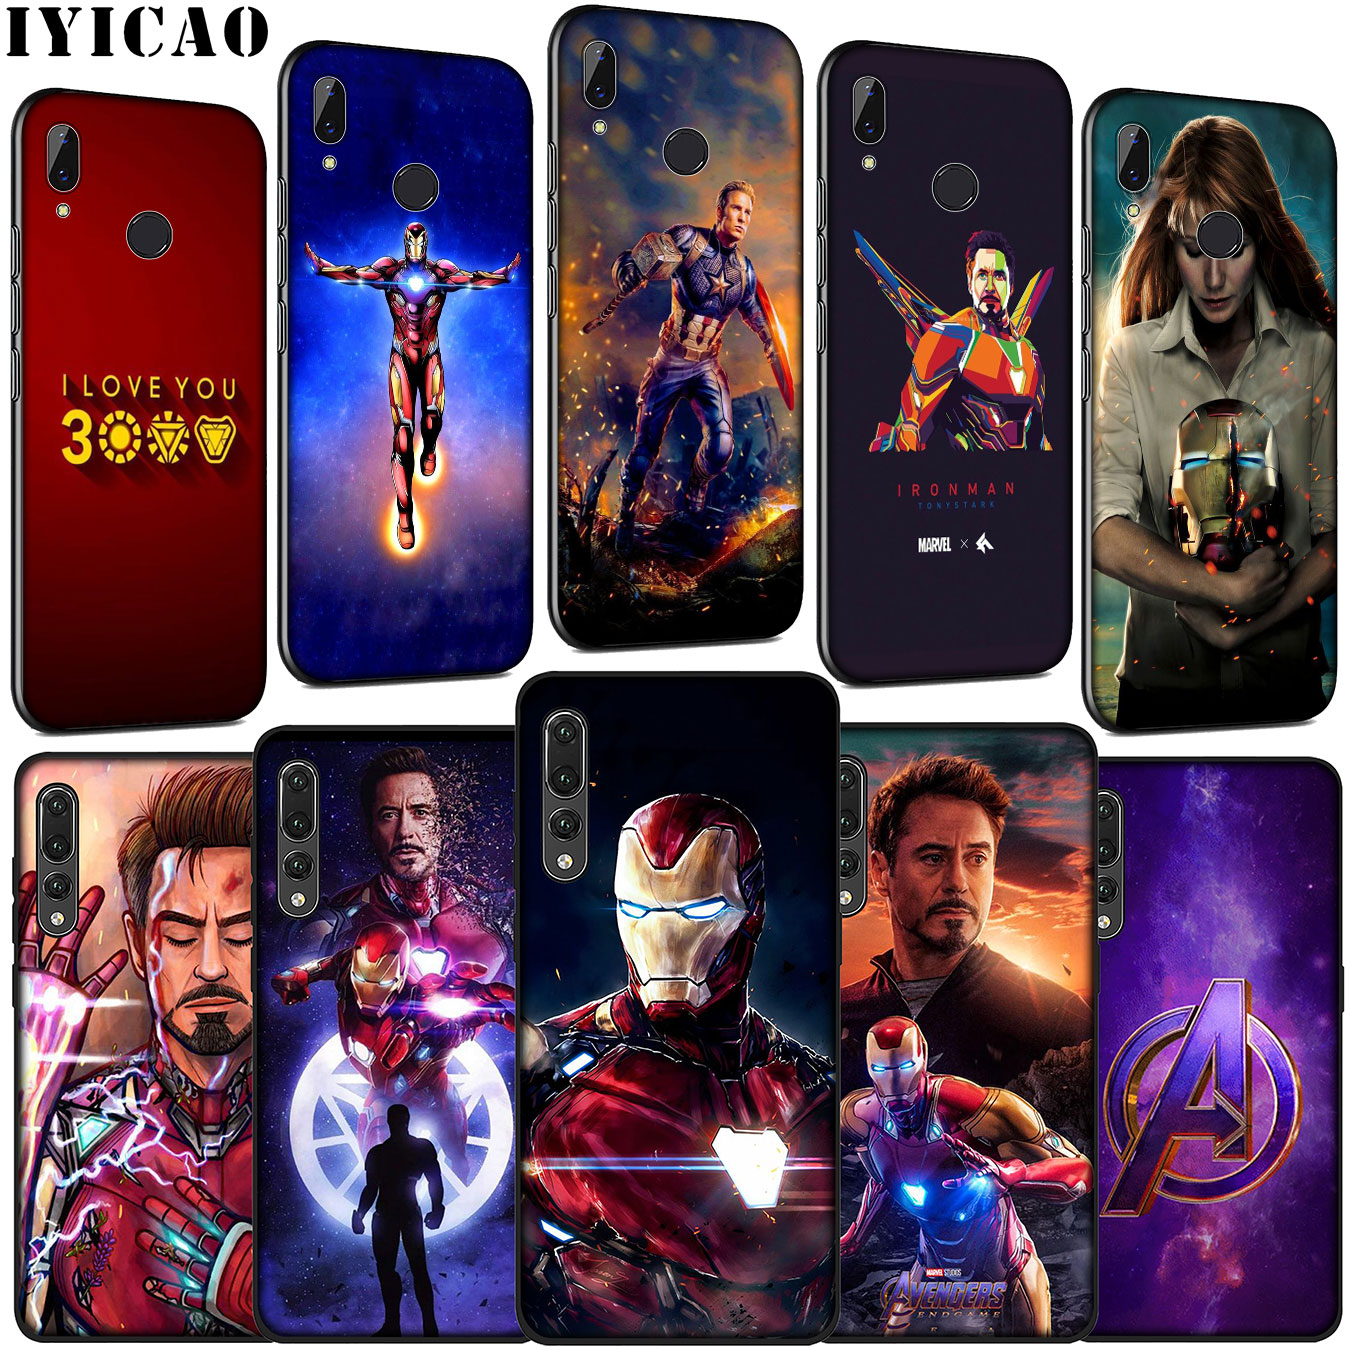 Iron Man Marvel IronMan Soft Silicone Cover Case for Huawei P30 P20 Pro P10 P9 Lite Mini 2017 2016 P Smart Z Plus 2019 image